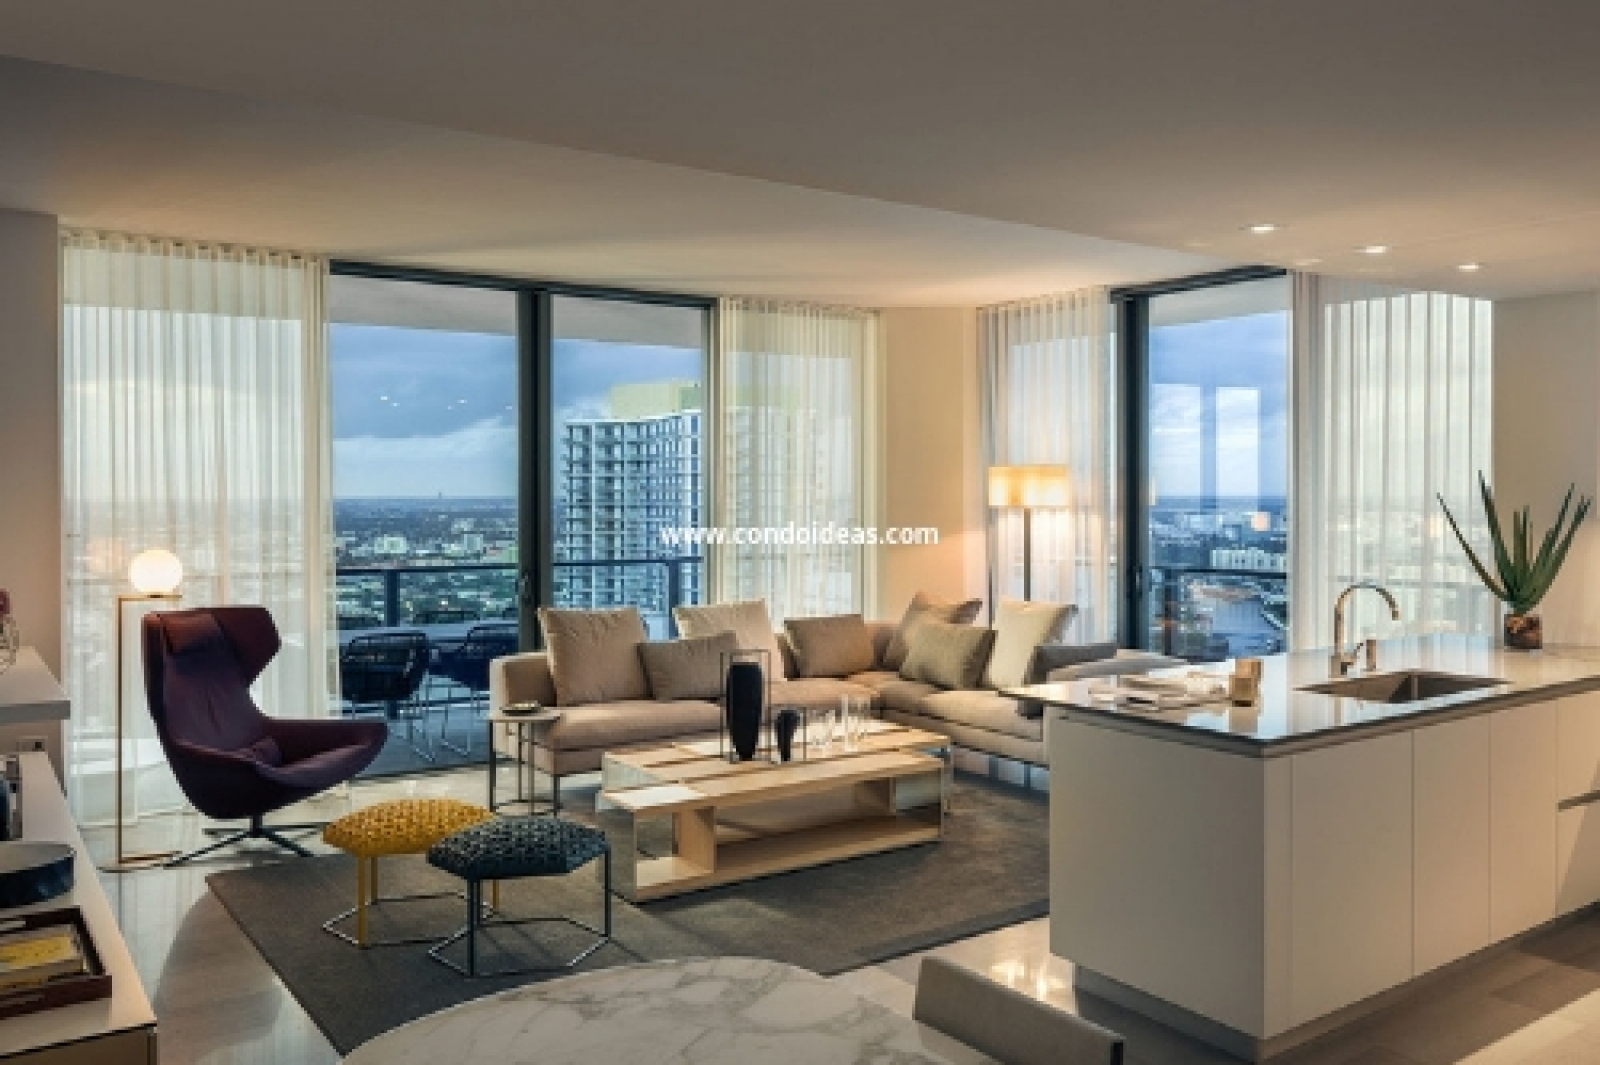 Brickell City Centre condo